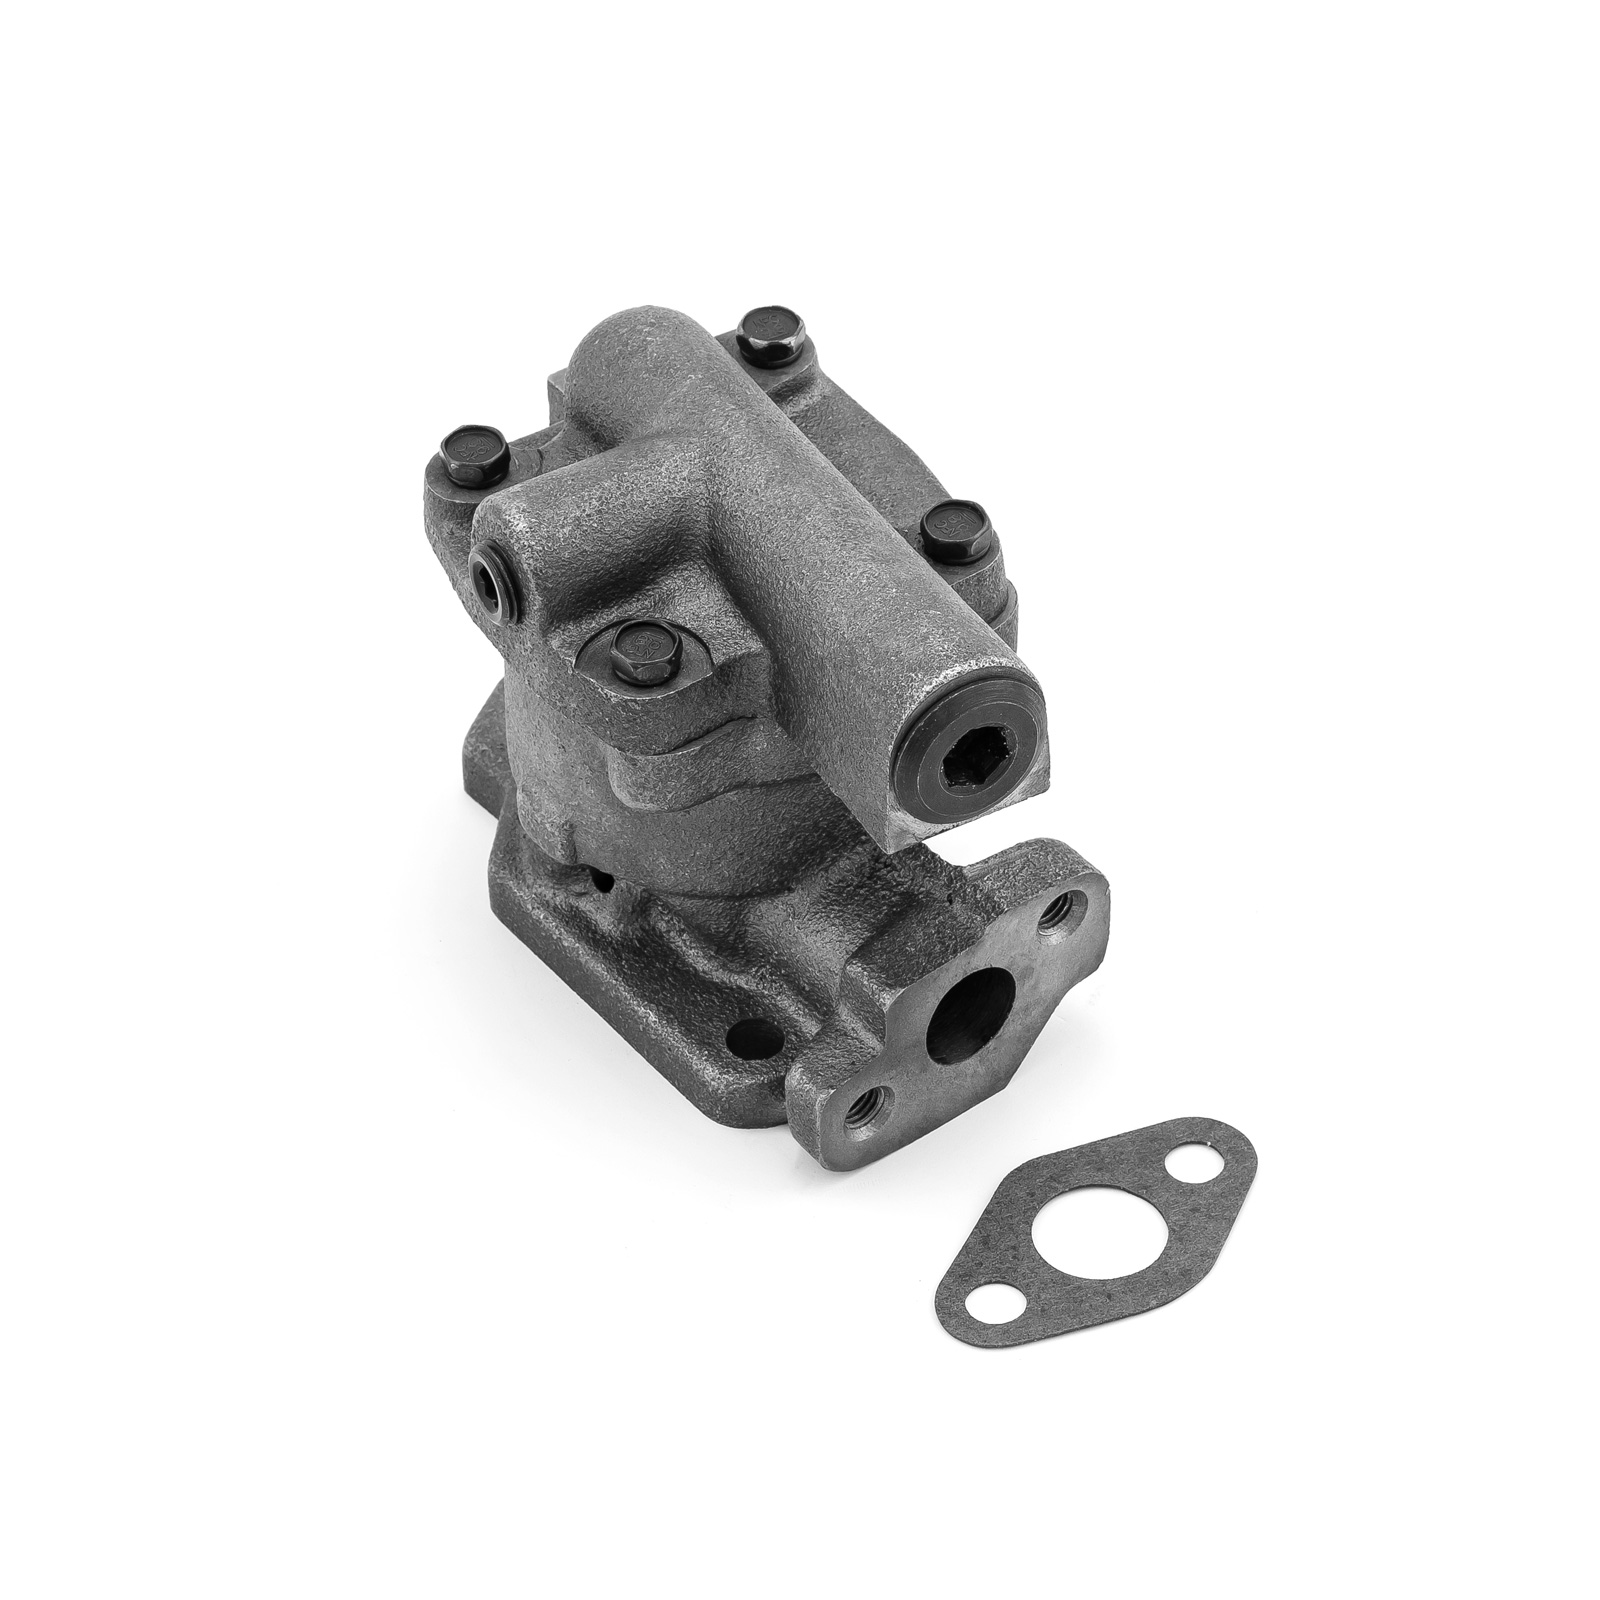 Ford 4 cyl Standard Volume / Pressure Oil Pump